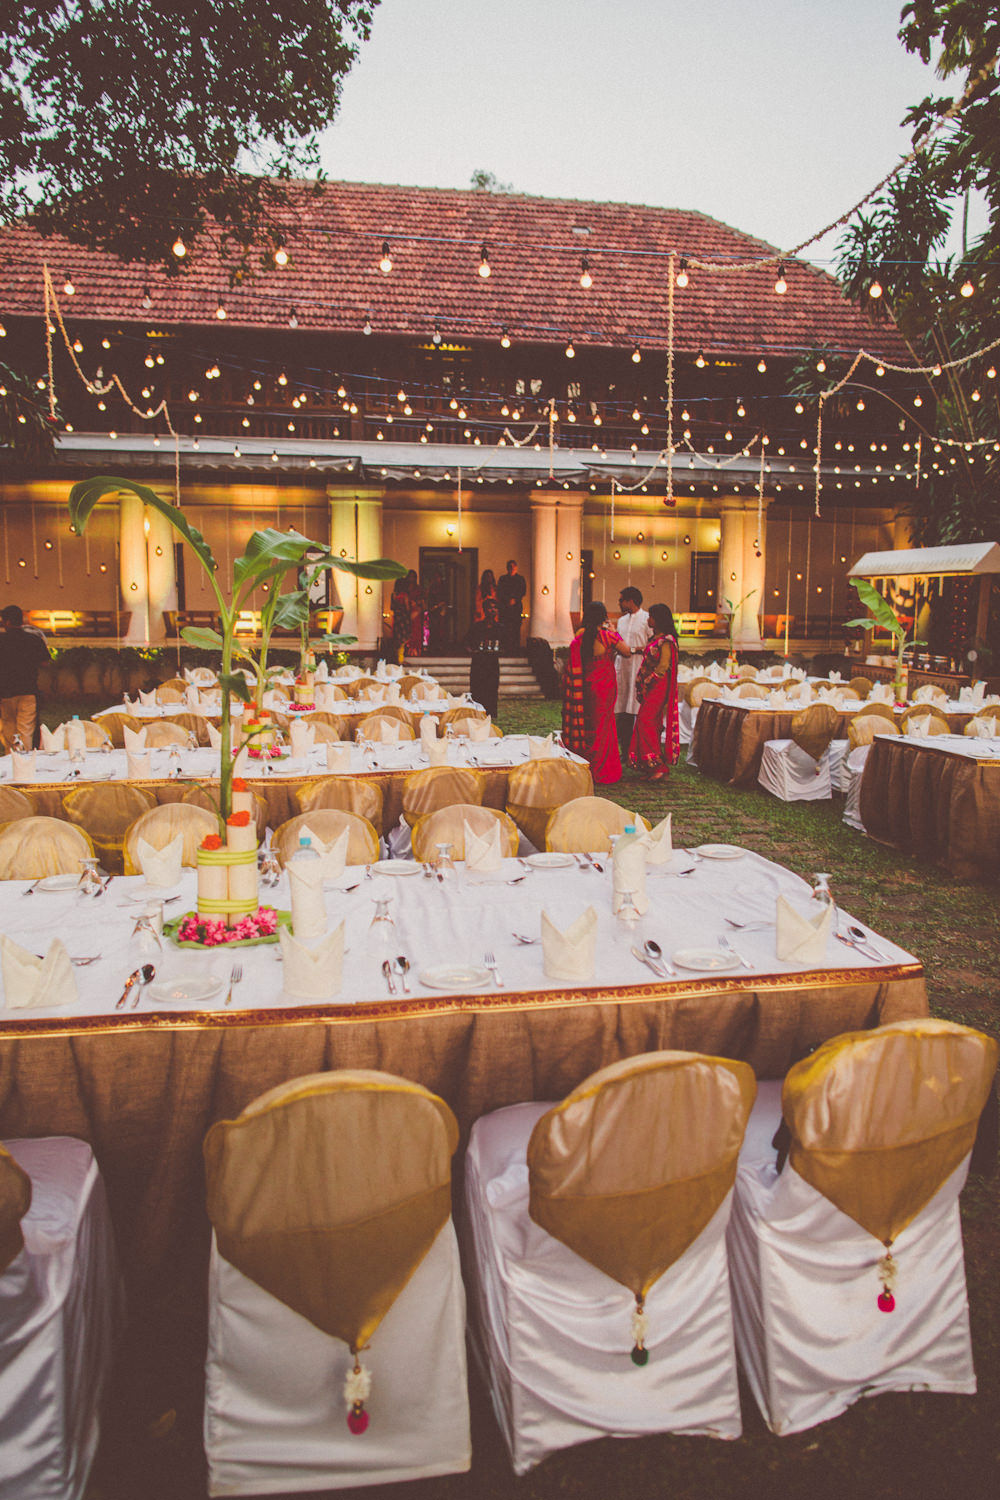 A Kerala Wedding In India With An Ivory And Gold Bridal